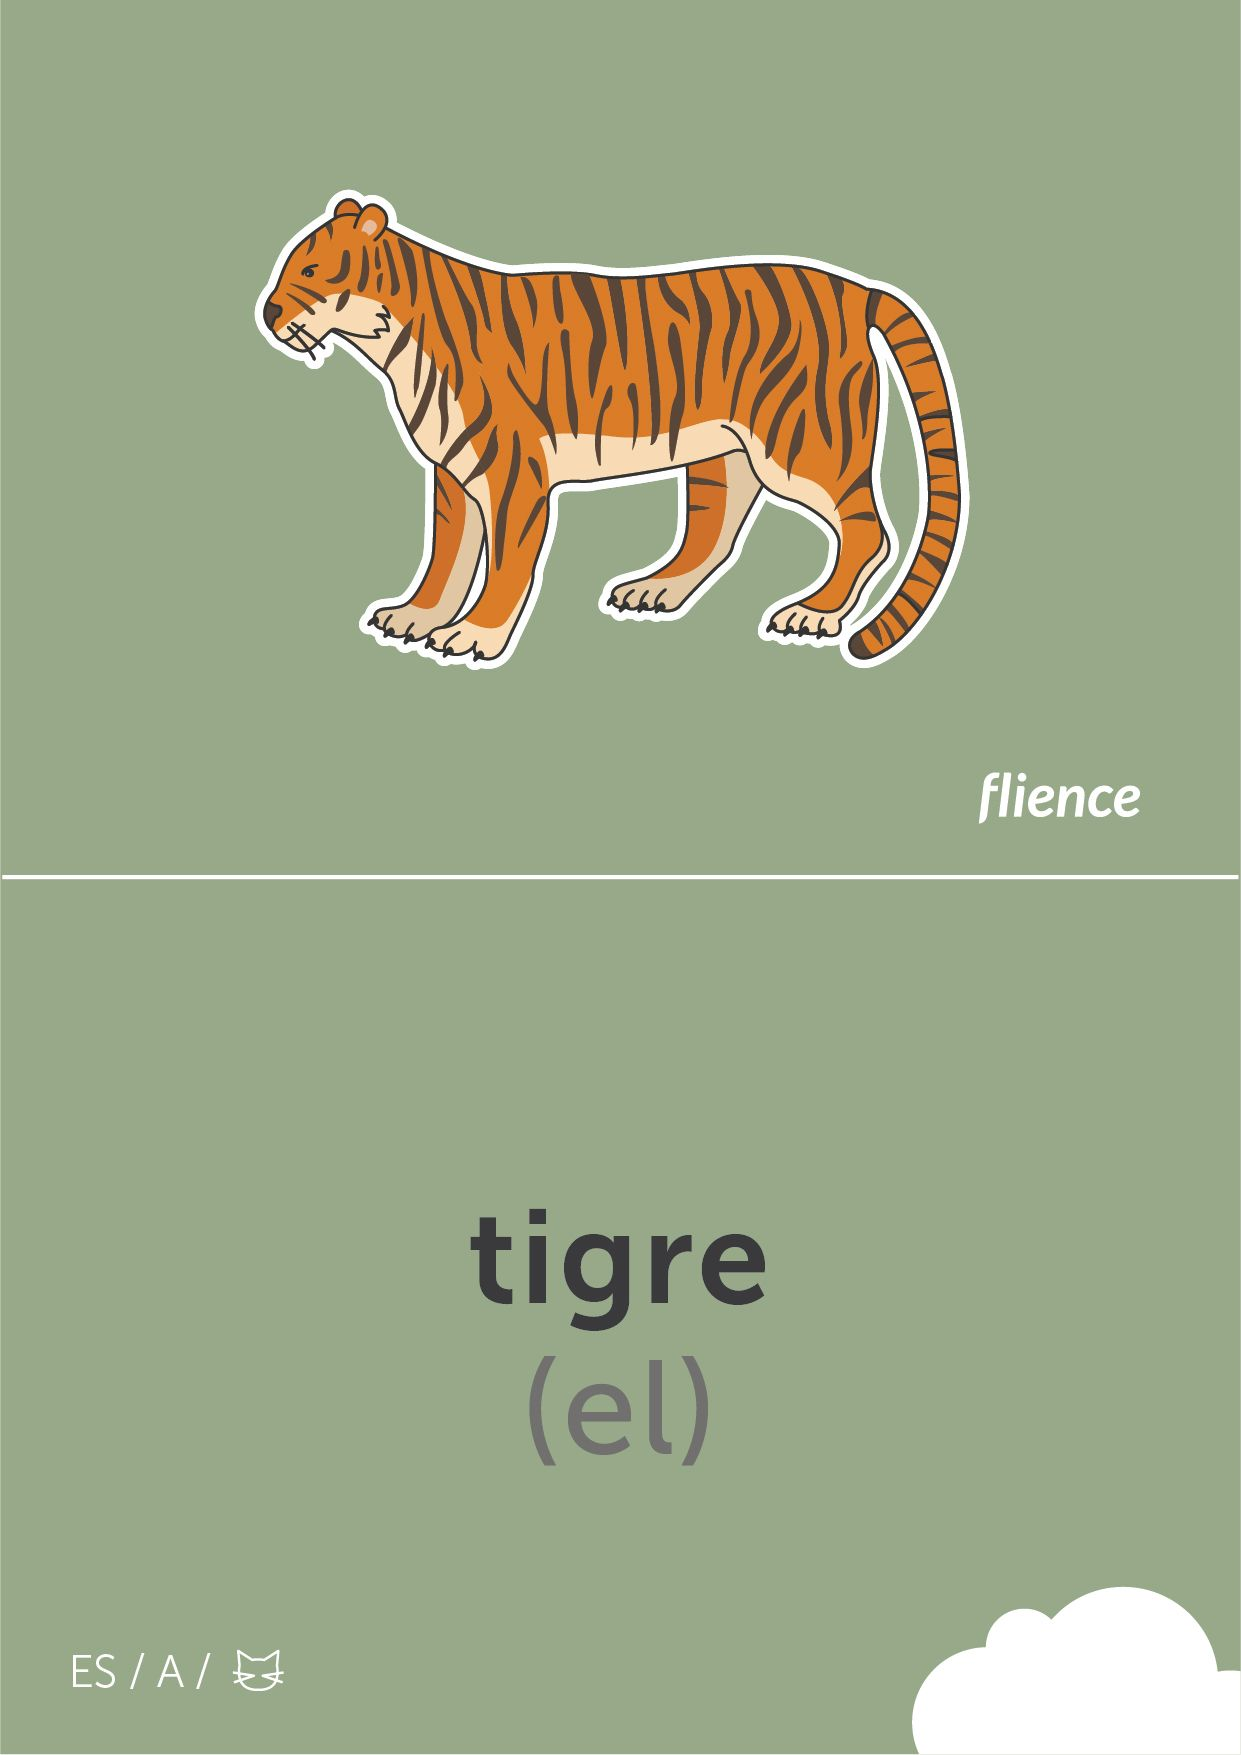 Tigre Cardfly Flience Animals Spanish Education Flashcard Language Tygrys Wloski Design